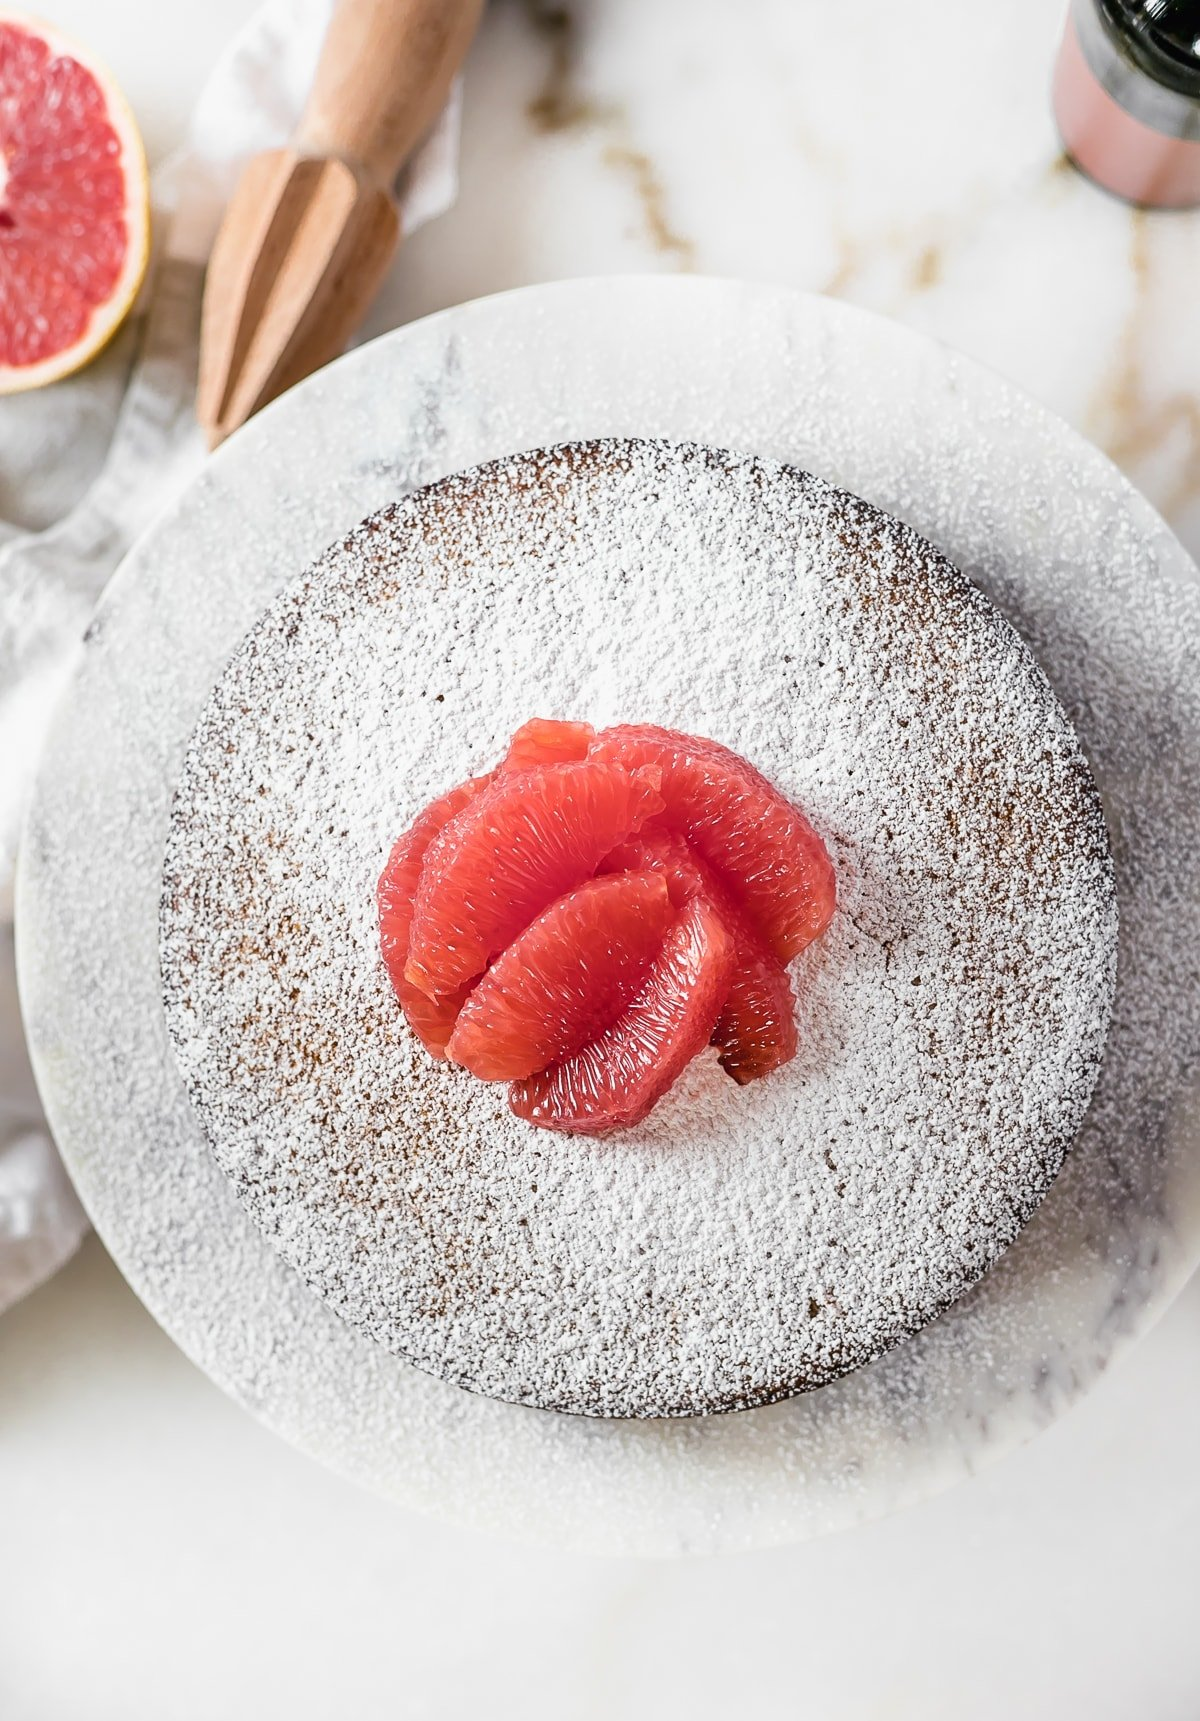 Grapefruit Cake Using Cake Mix